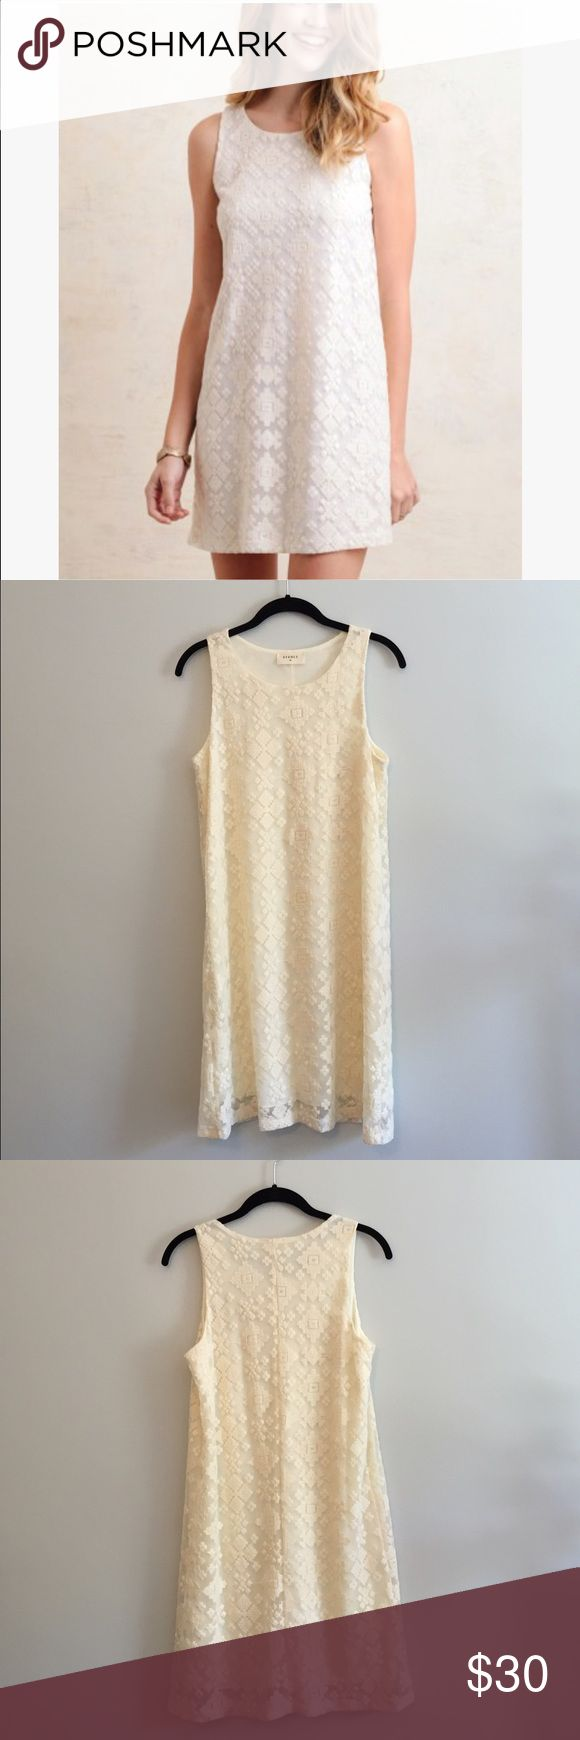 NWOT White Embroidered Dress NWOT. Never worn off white embroidered dress Everly Dresses